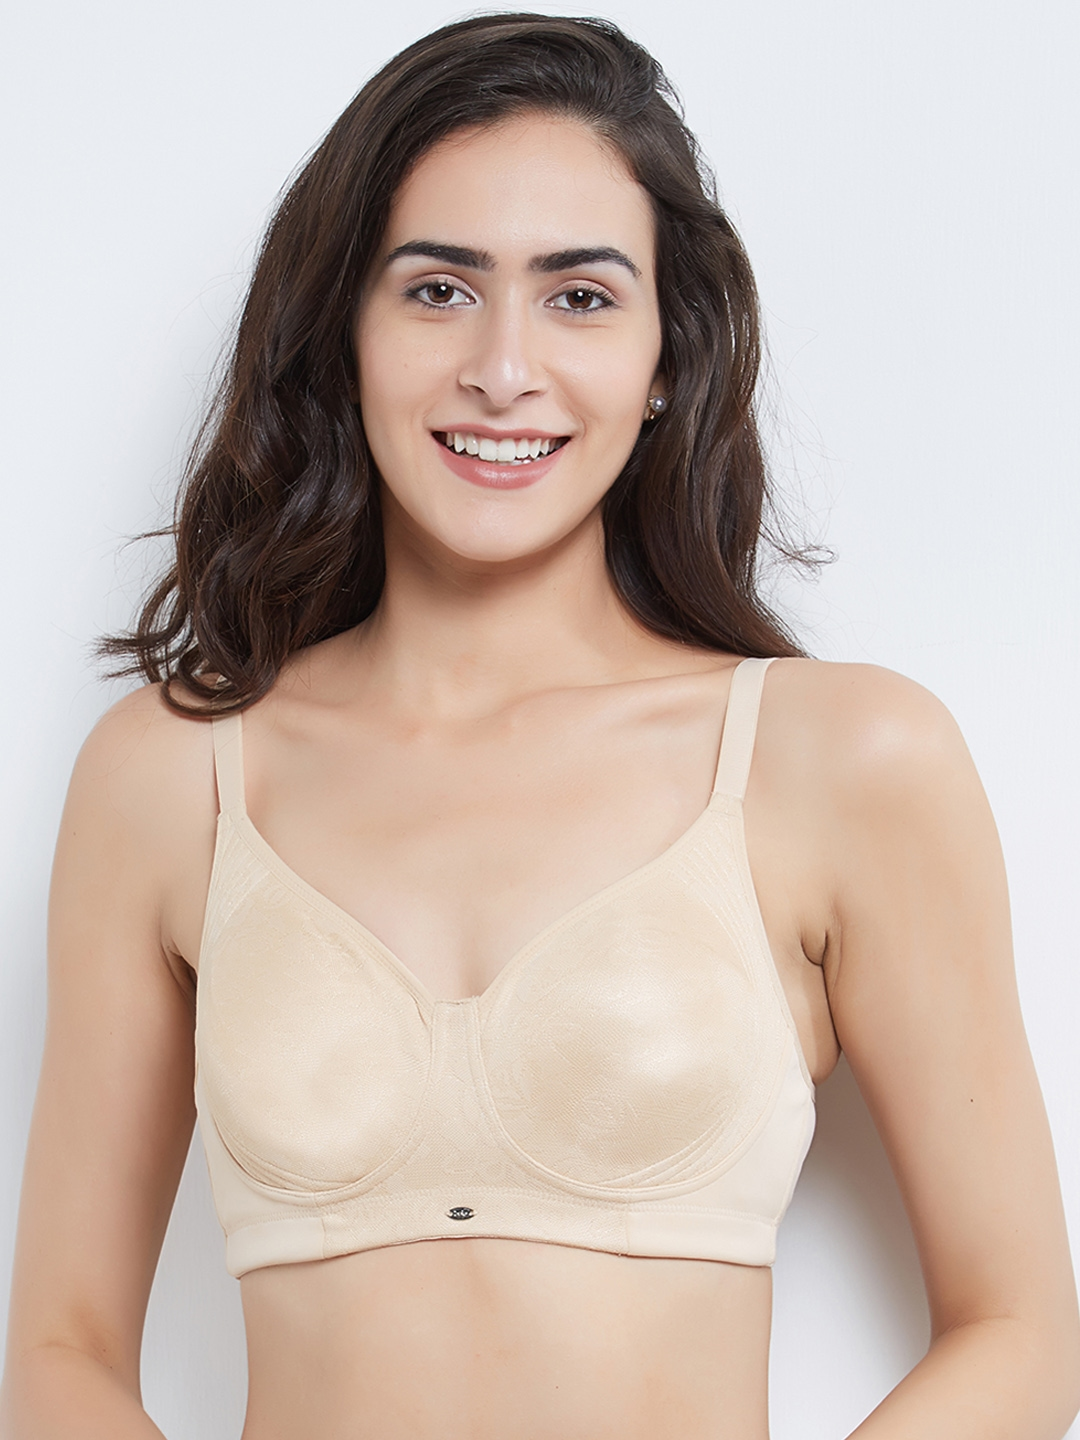 565312f7432 Buy Soie Nude Coloured Solid Non Wired Non Padded T Shirt Bra CB ...